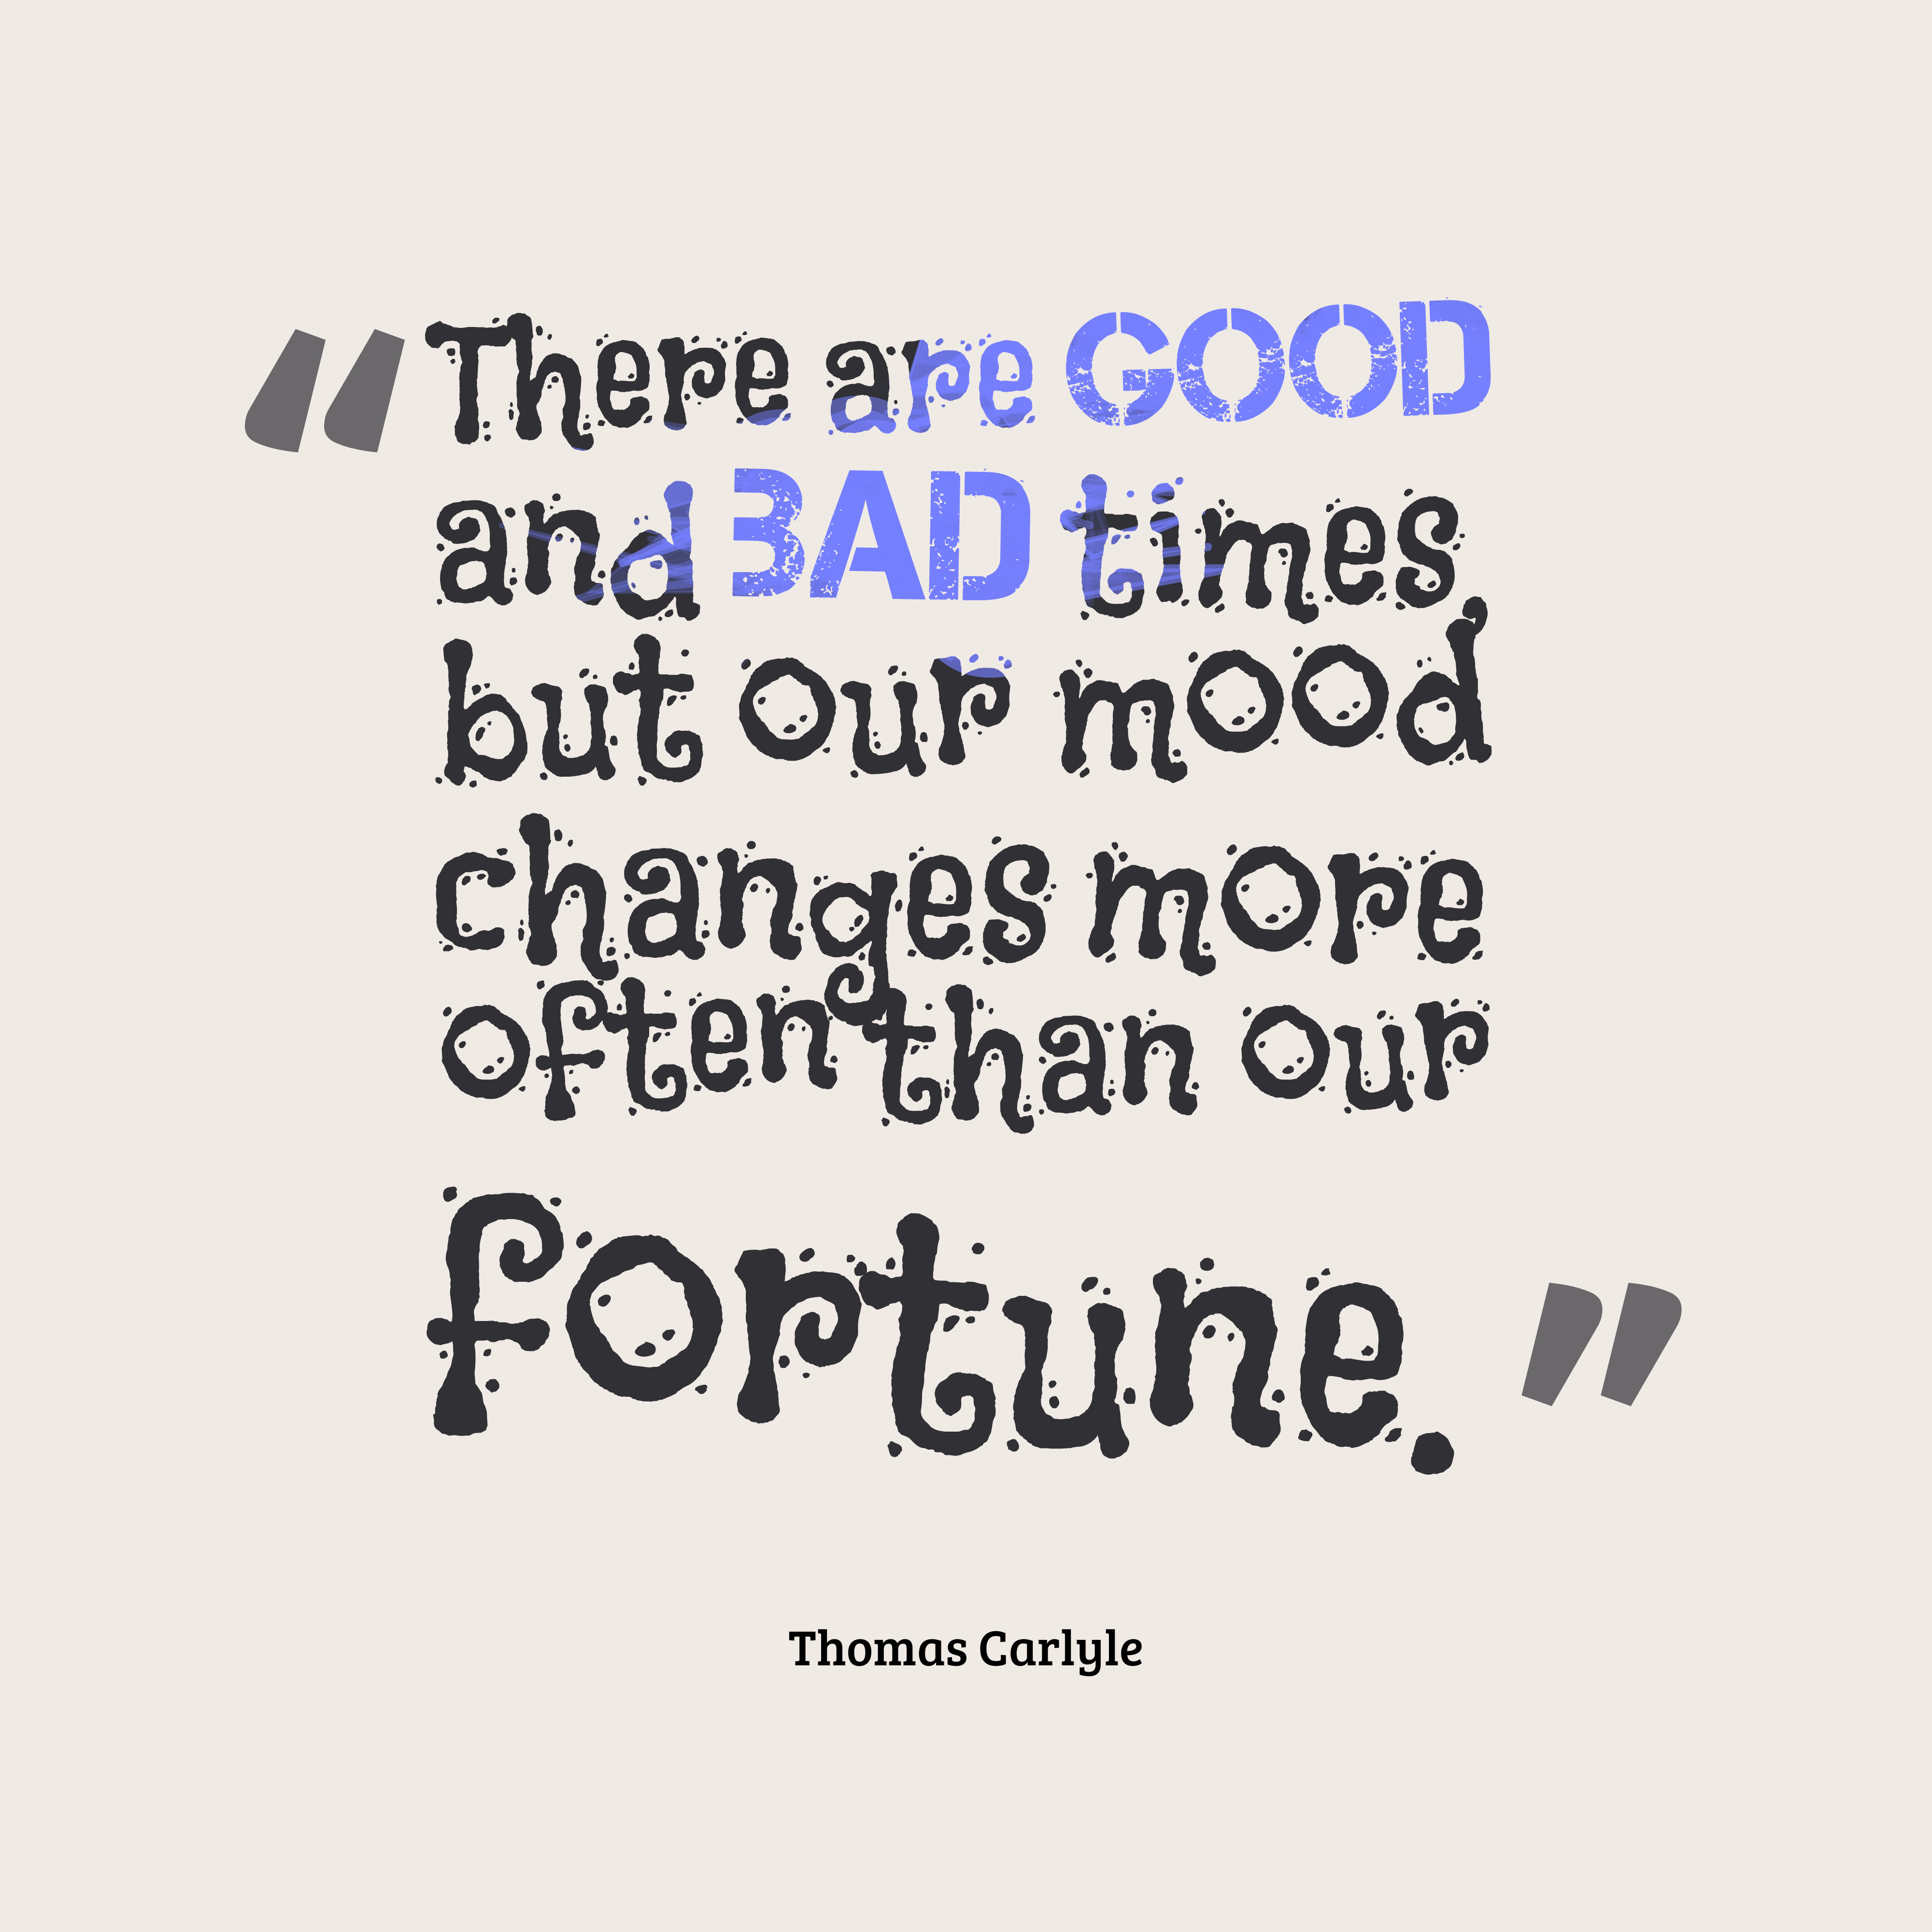 Quotes About Not In Good Mood 30 Quotes